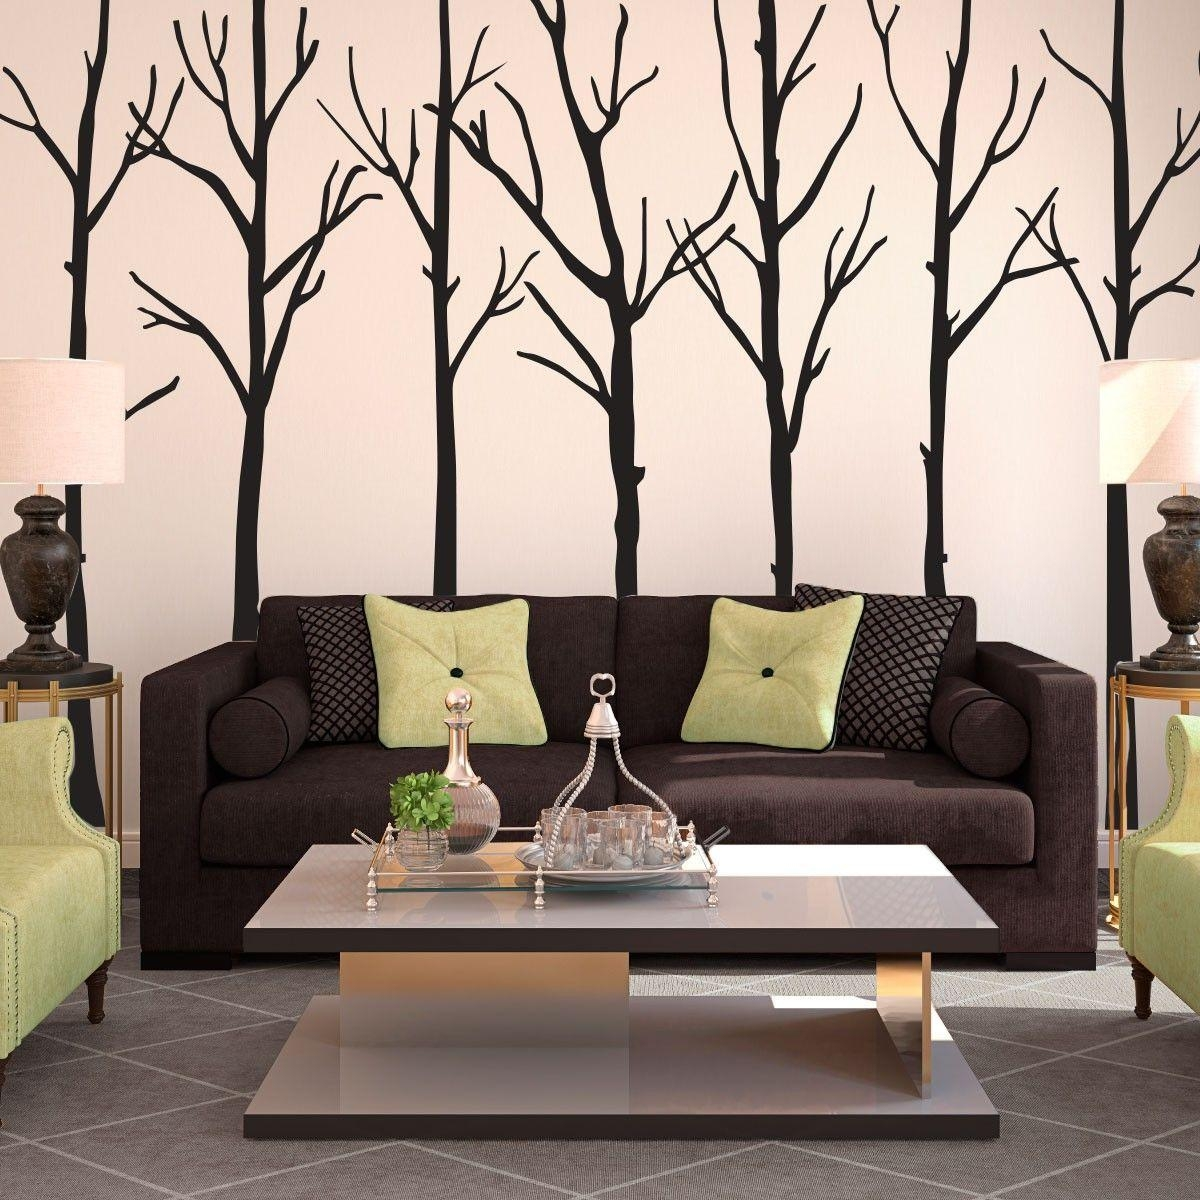 Best Living Room Wall Art Decoration – House Design With Wall Arts For Living Room (Image 8 of 20)